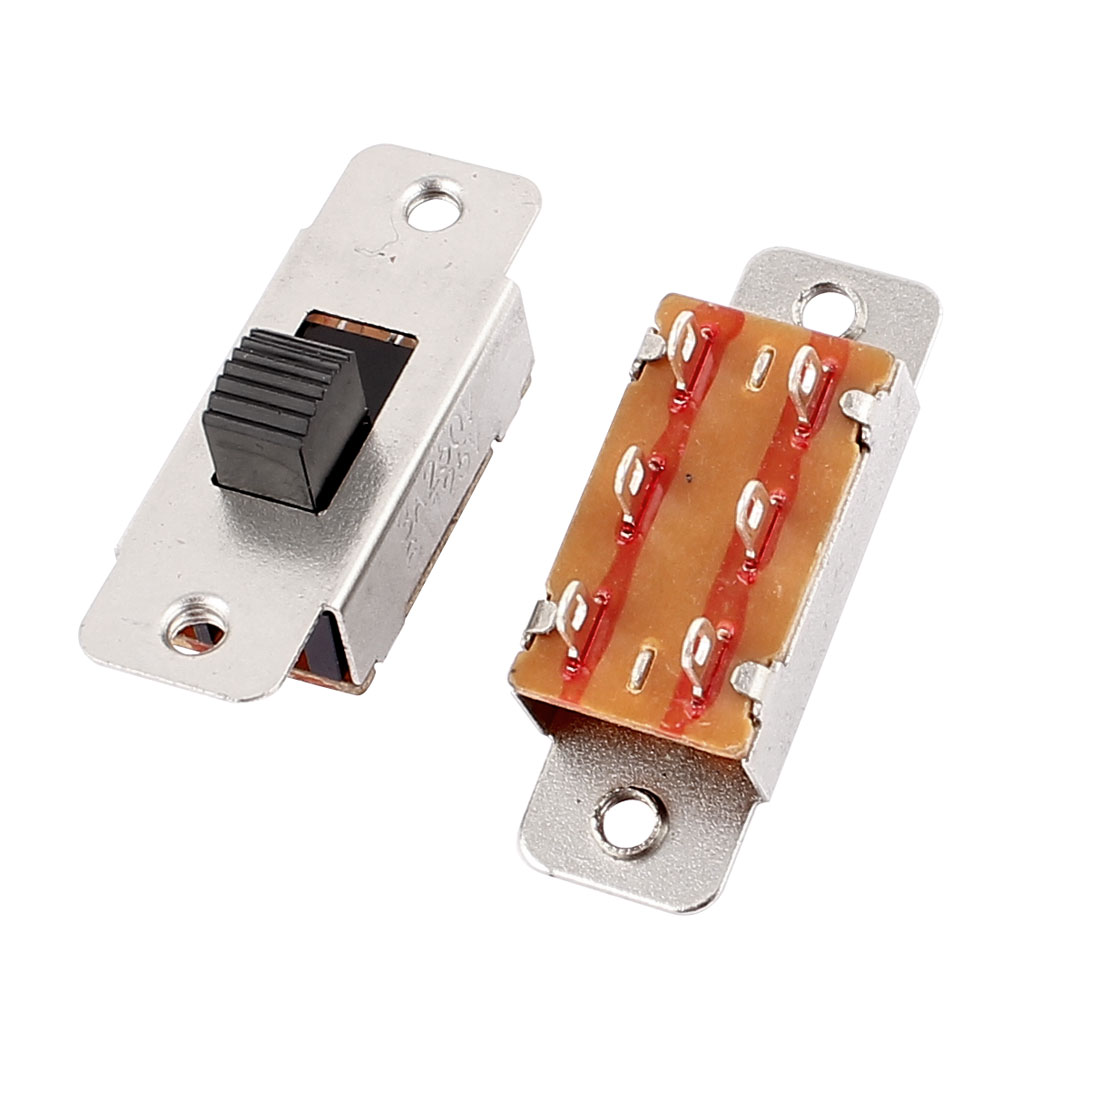 2 Pcs 3A 12V 6 Pins 2 Positions DPDT On/On Mini Slide Switch